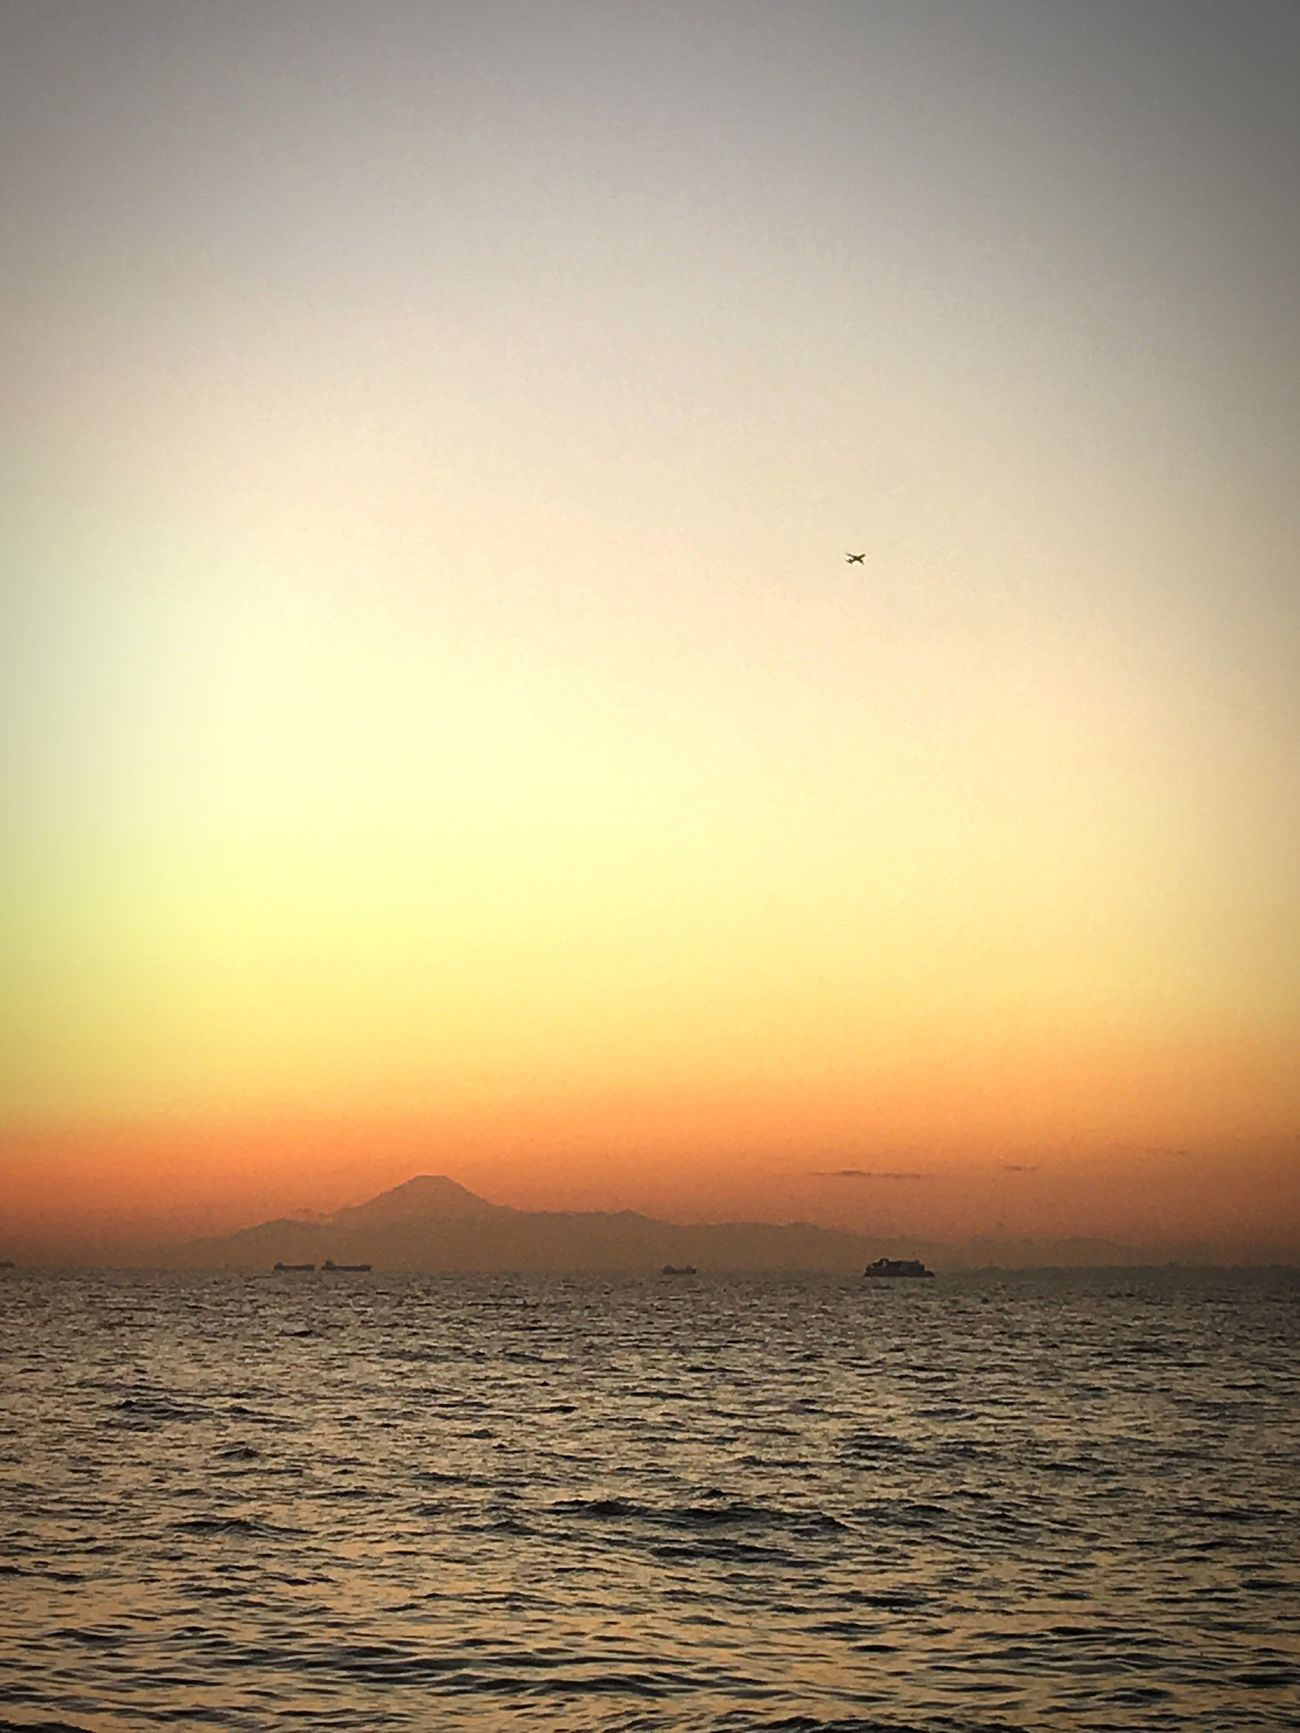 Japan Sunset Scenics Chiba Ocean View Tokyo Tokyo Bay Mount FuJi Mount Fuji Views In The Distance Sunset